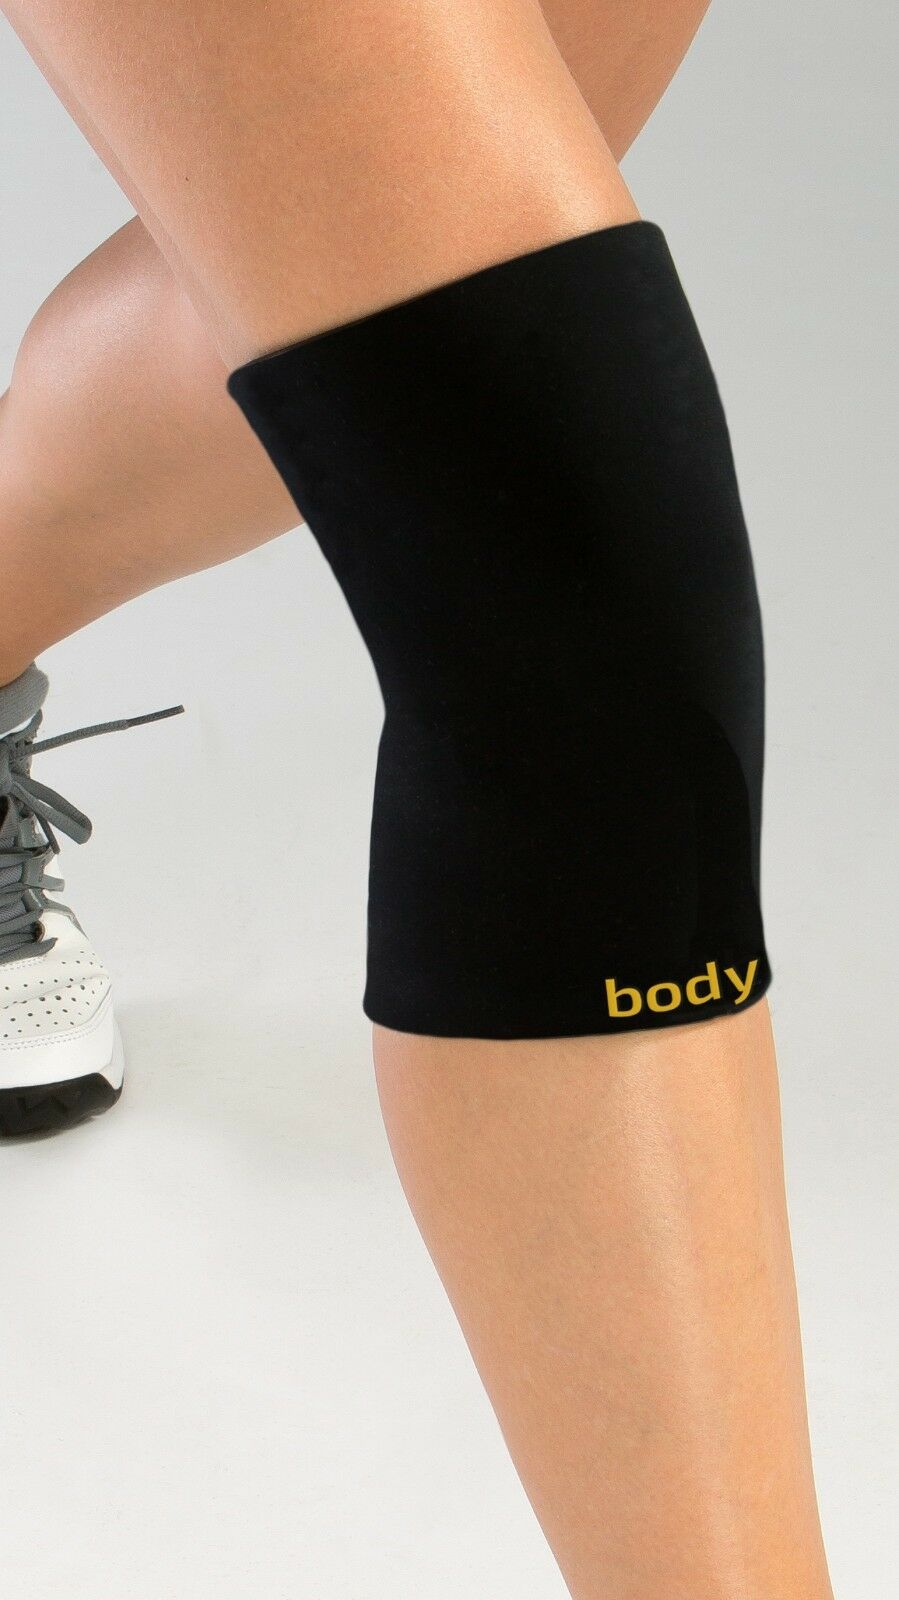 Body Helix Full Knee Support, Extra Small, Small, Medium, Large, Extra Large